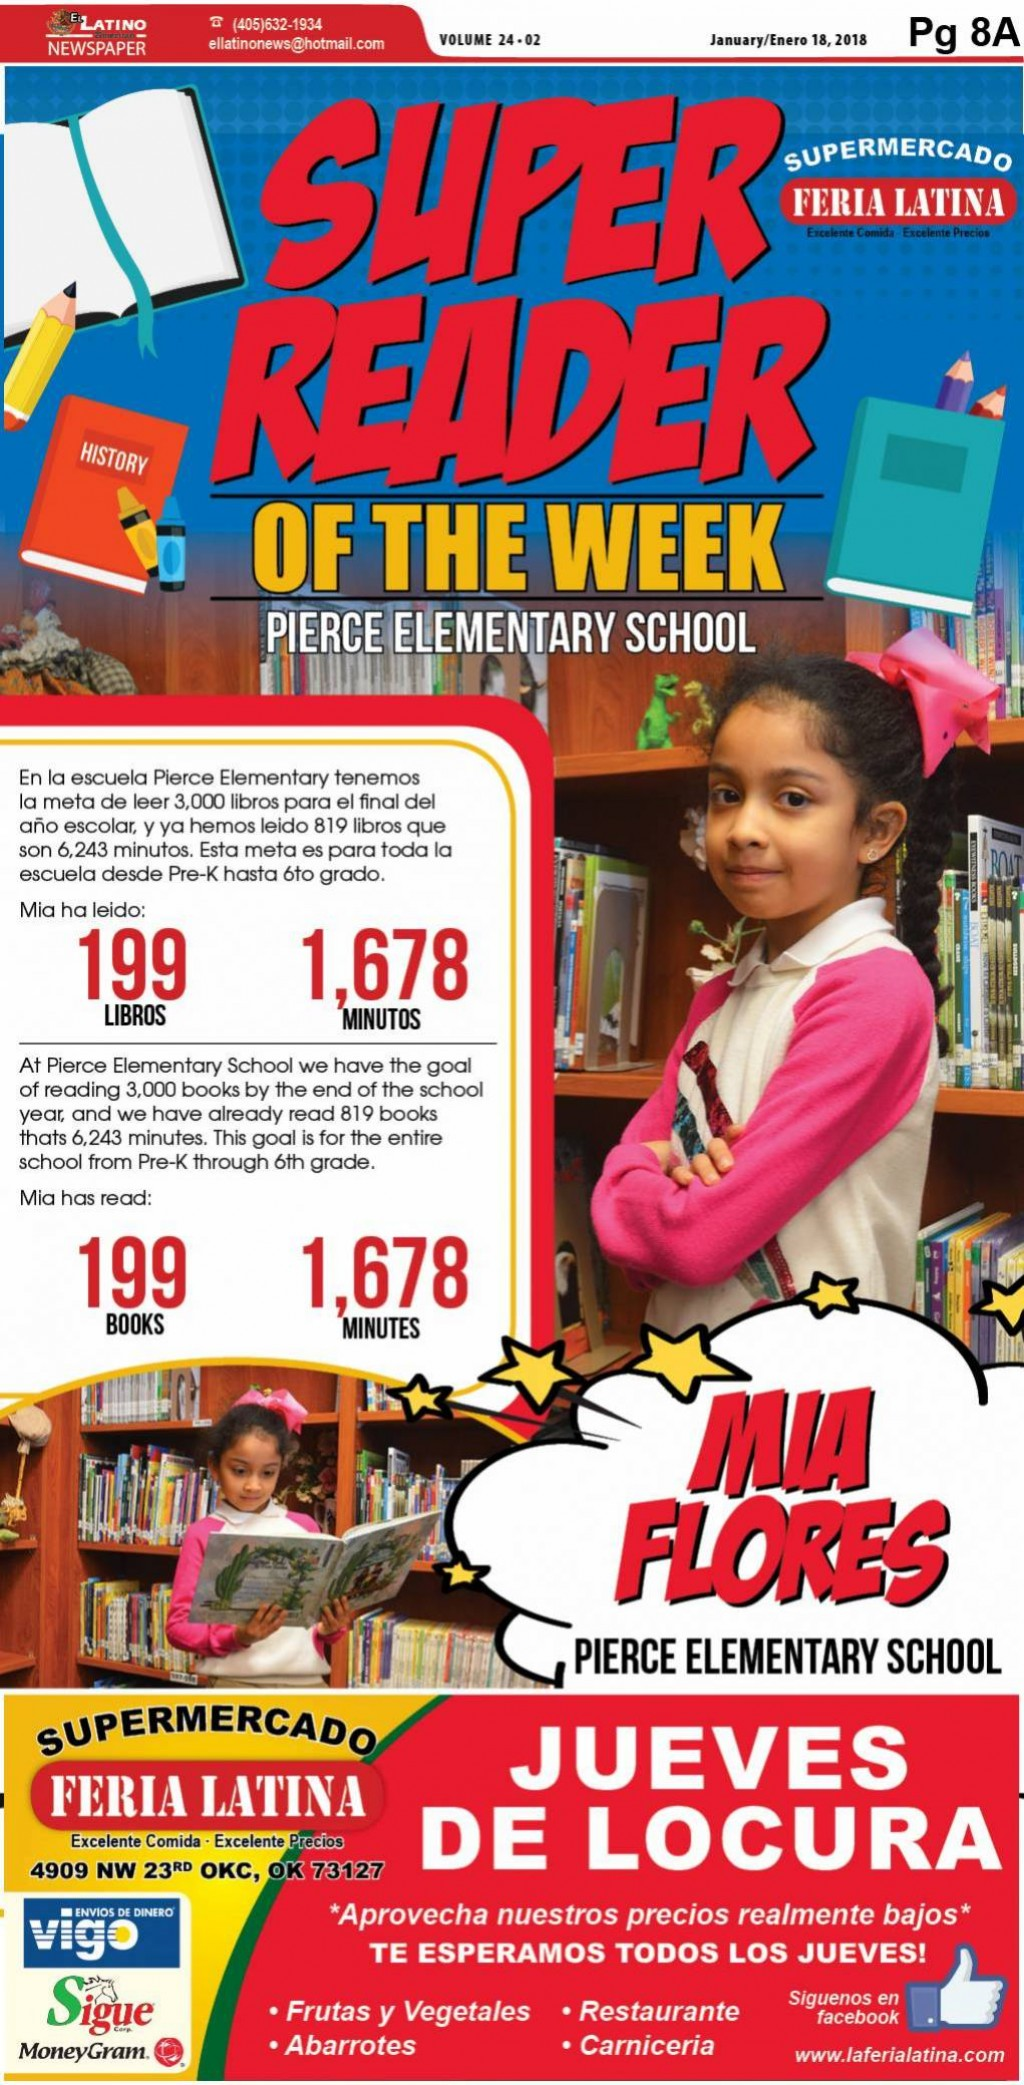 Super Reader of the Week: Mia Flores